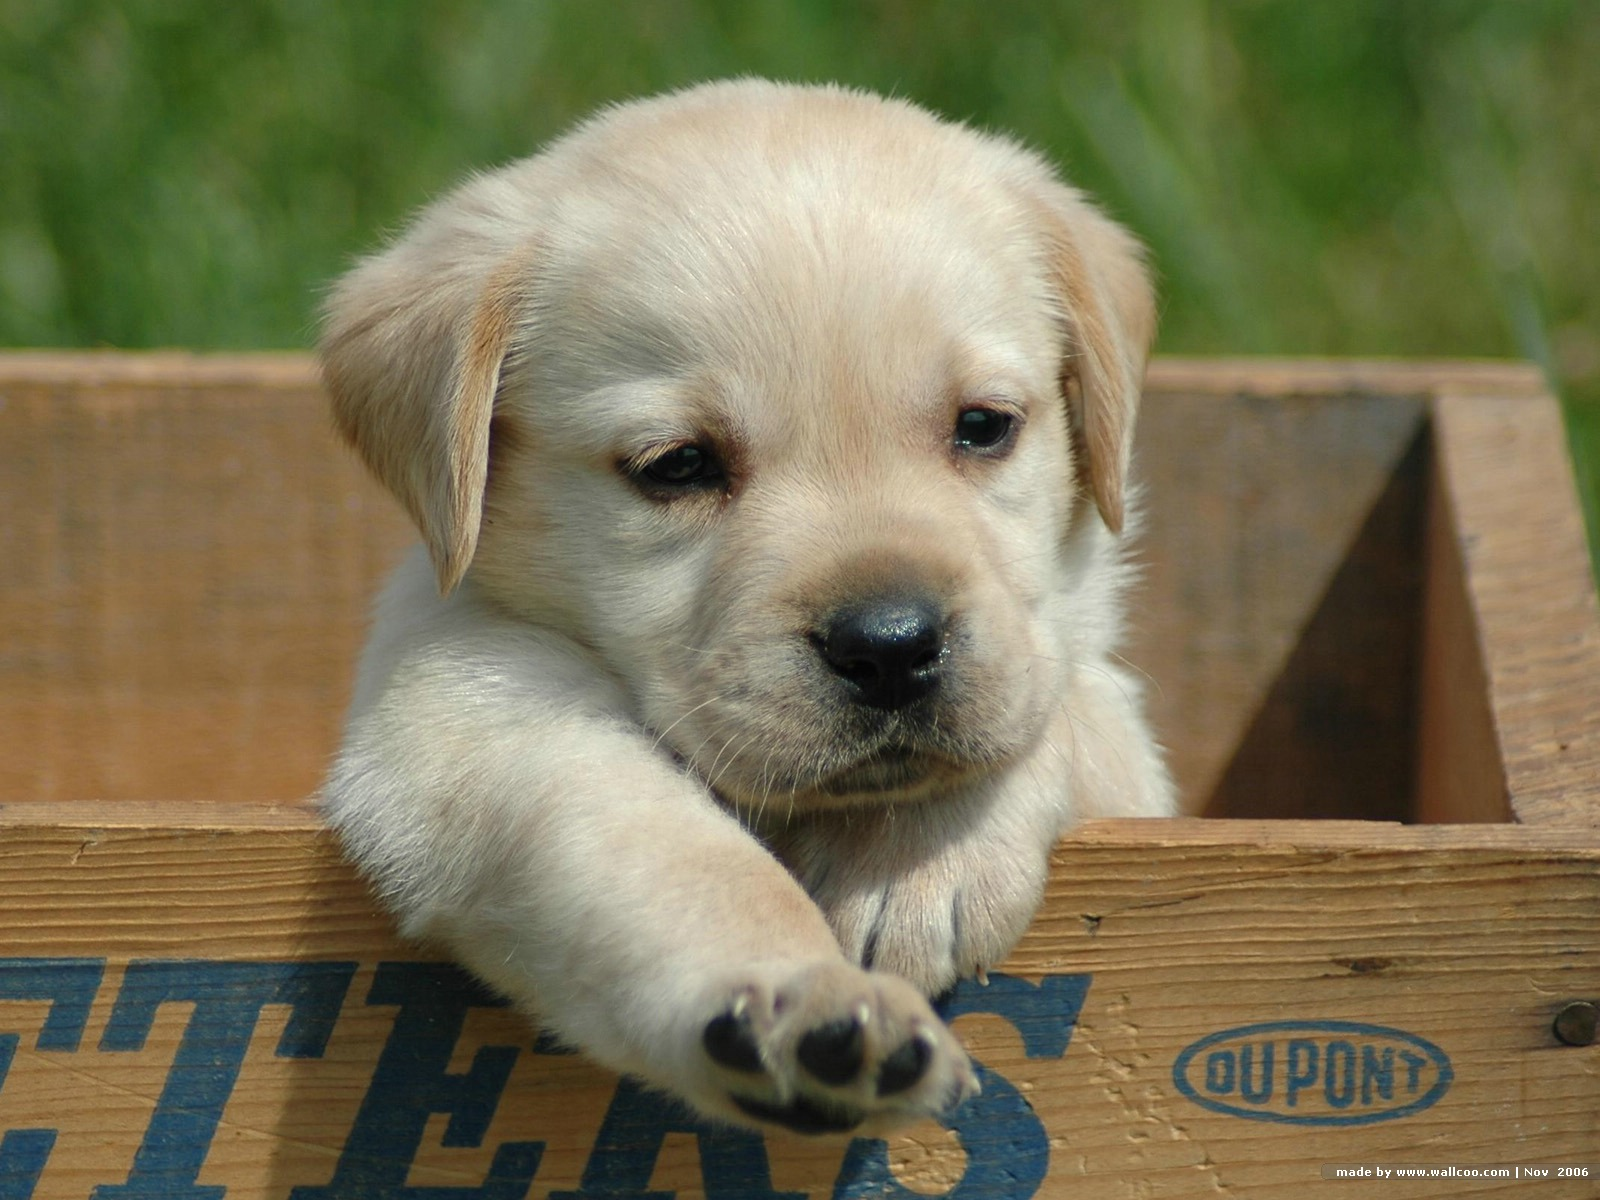 Cute Labrador Retriever puppy wallpaper